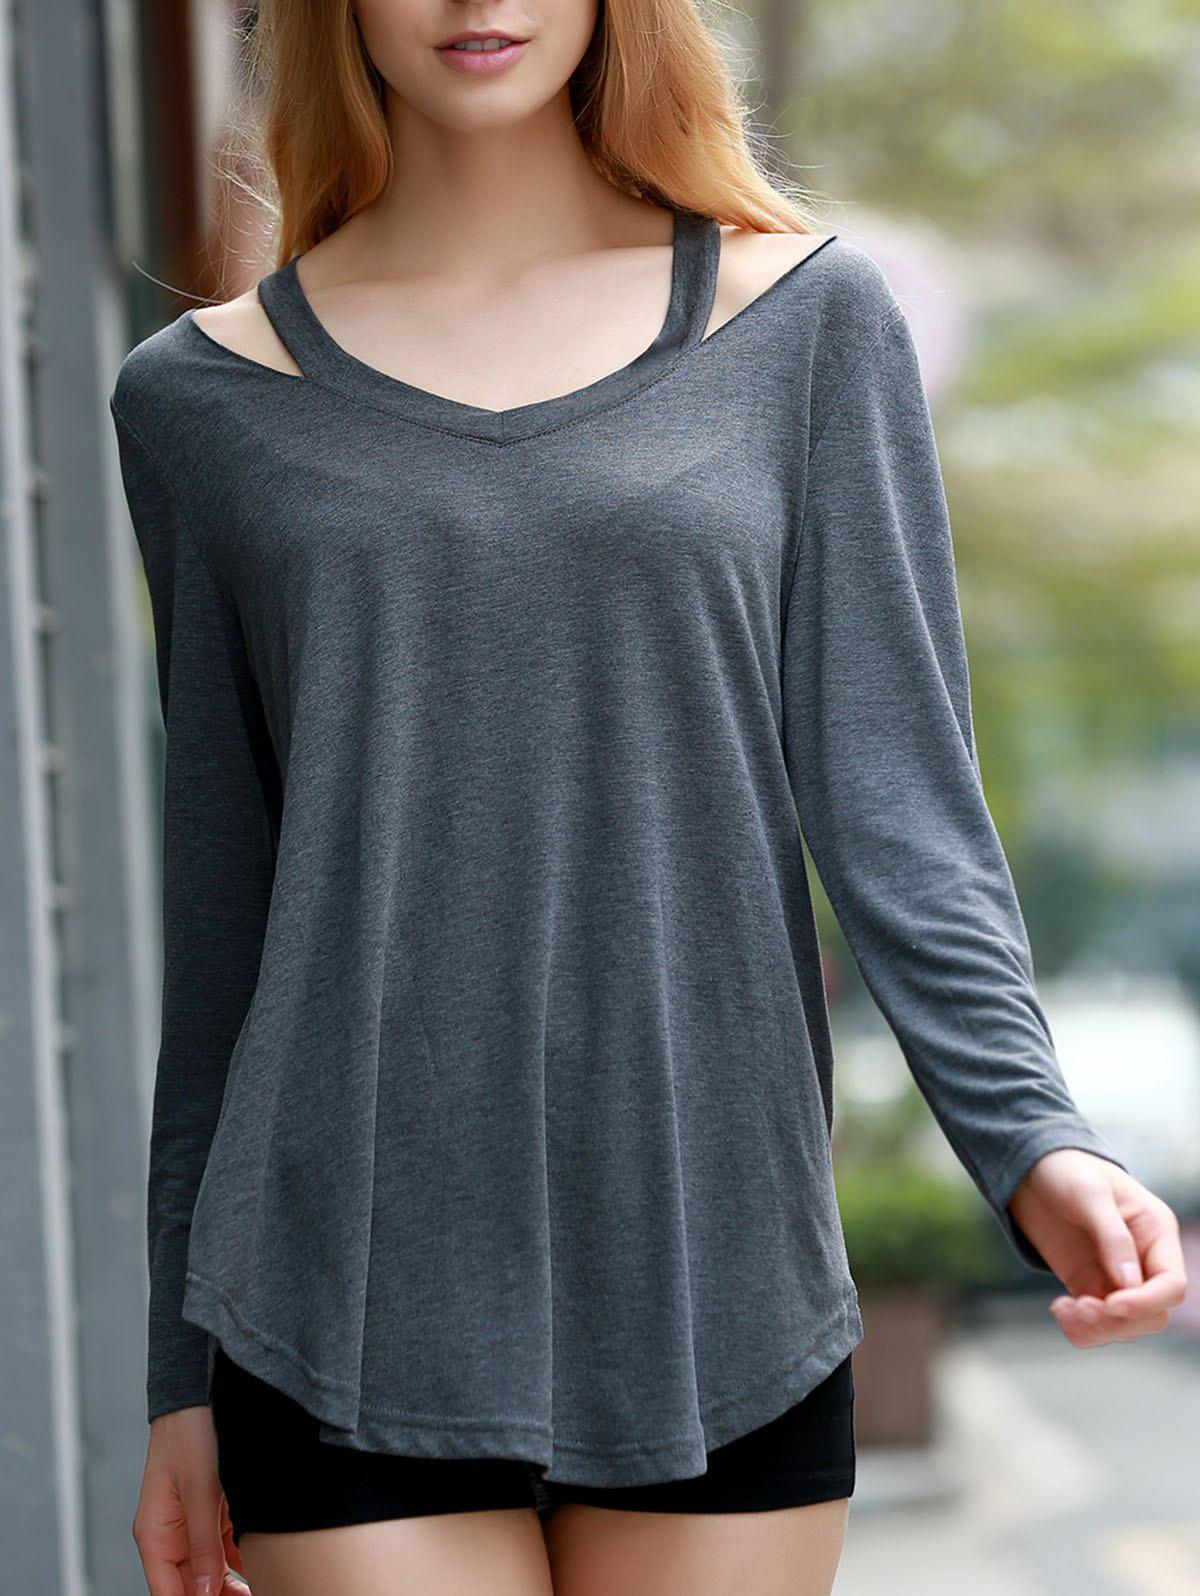 Stylish Women's V-Neck Long Sleeve Hollow Out Asymmetrical T-Shirt - DEEP GRAY S